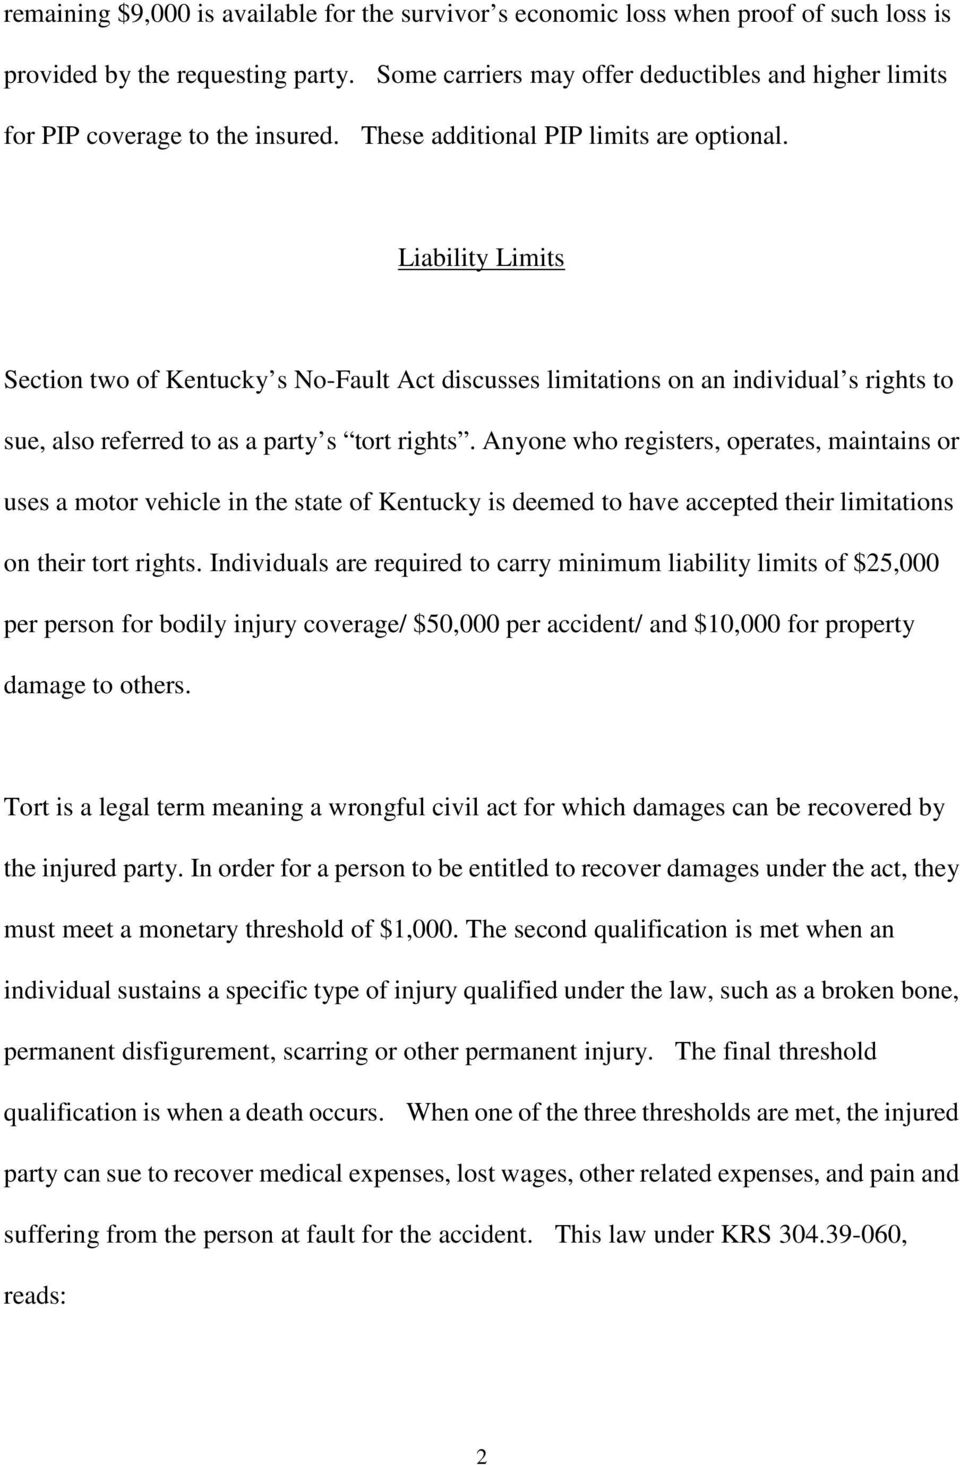 Liability Limits Section two of Kentucky s No-Fault Act discusses limitations on an individual s rights to sue, also referred to as a party s tort rights.